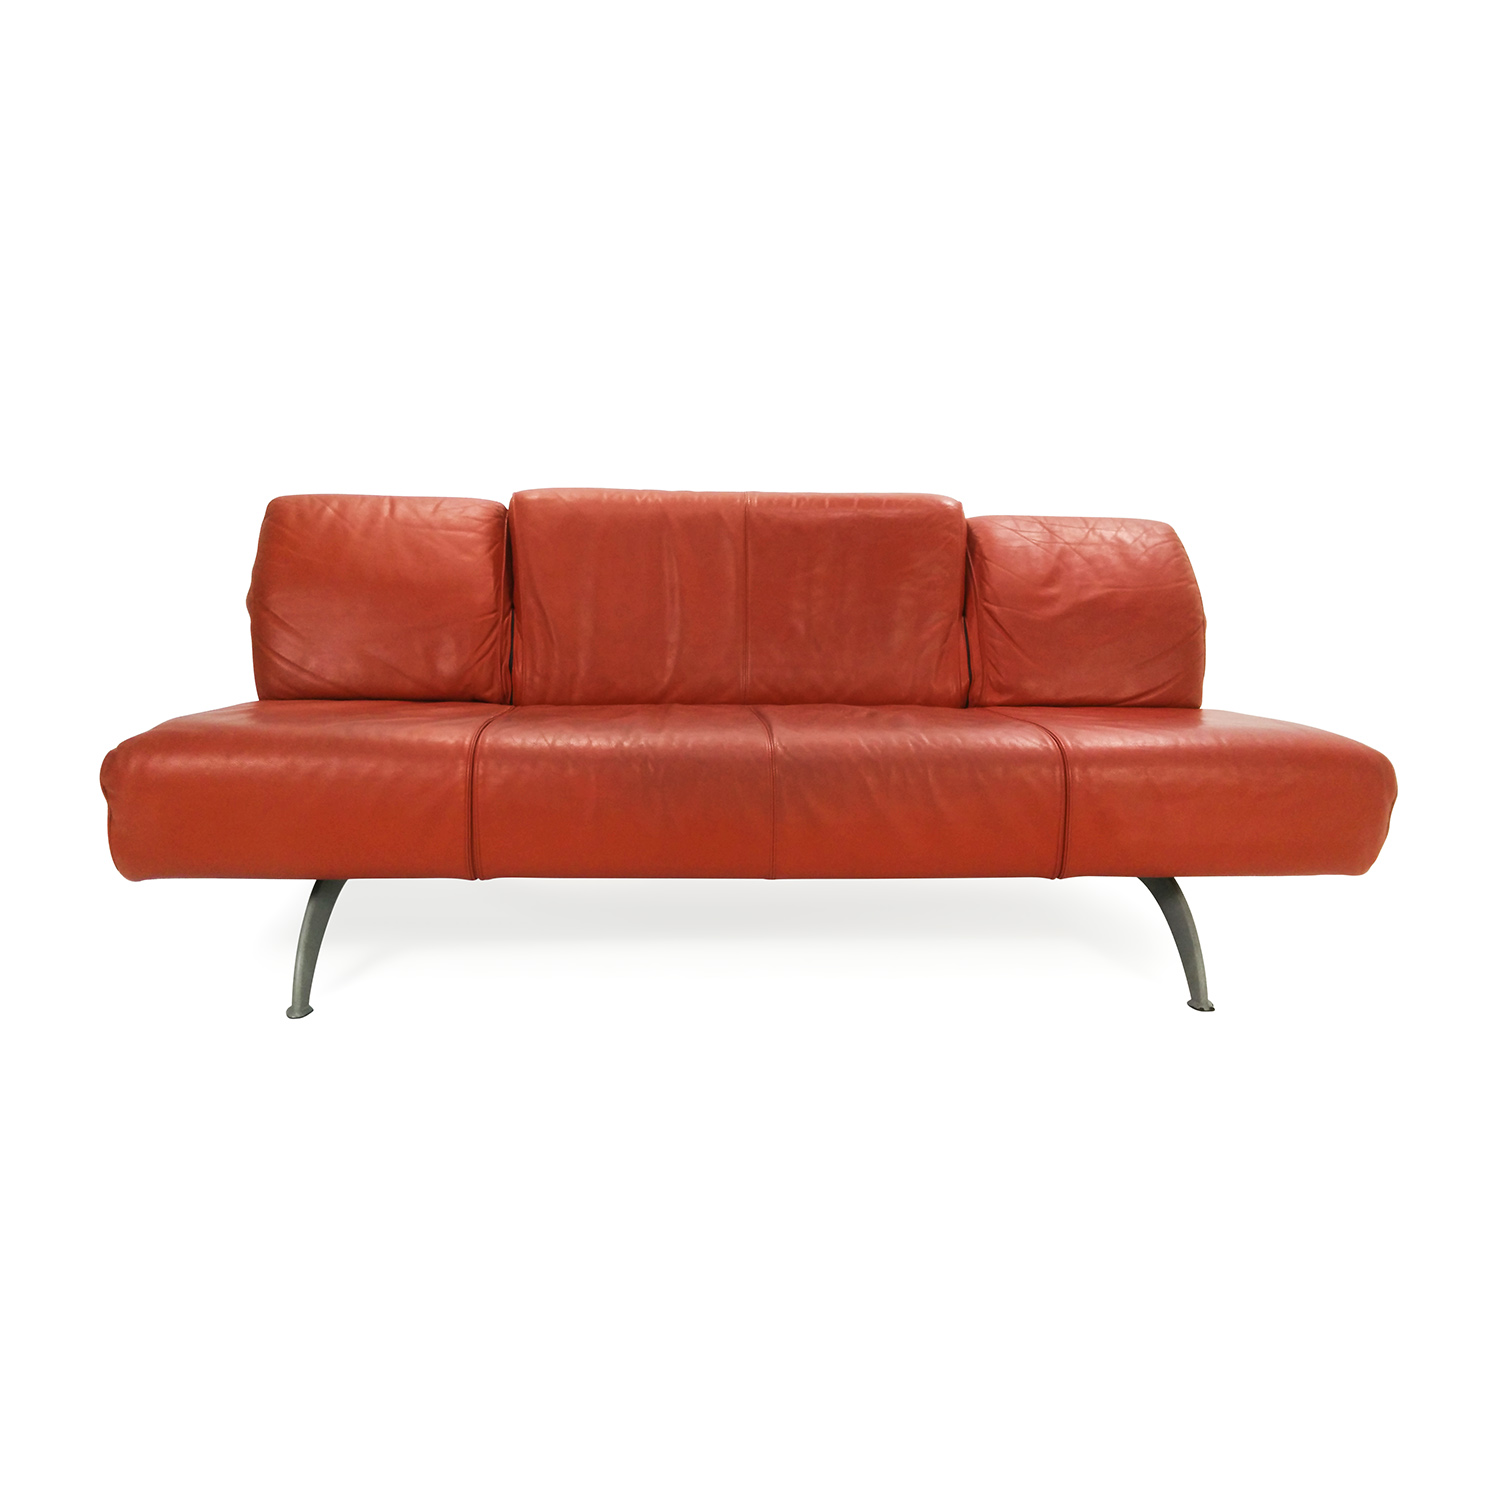 Team By Wellis Team By Wellis Red Leather Sofa Second Hand